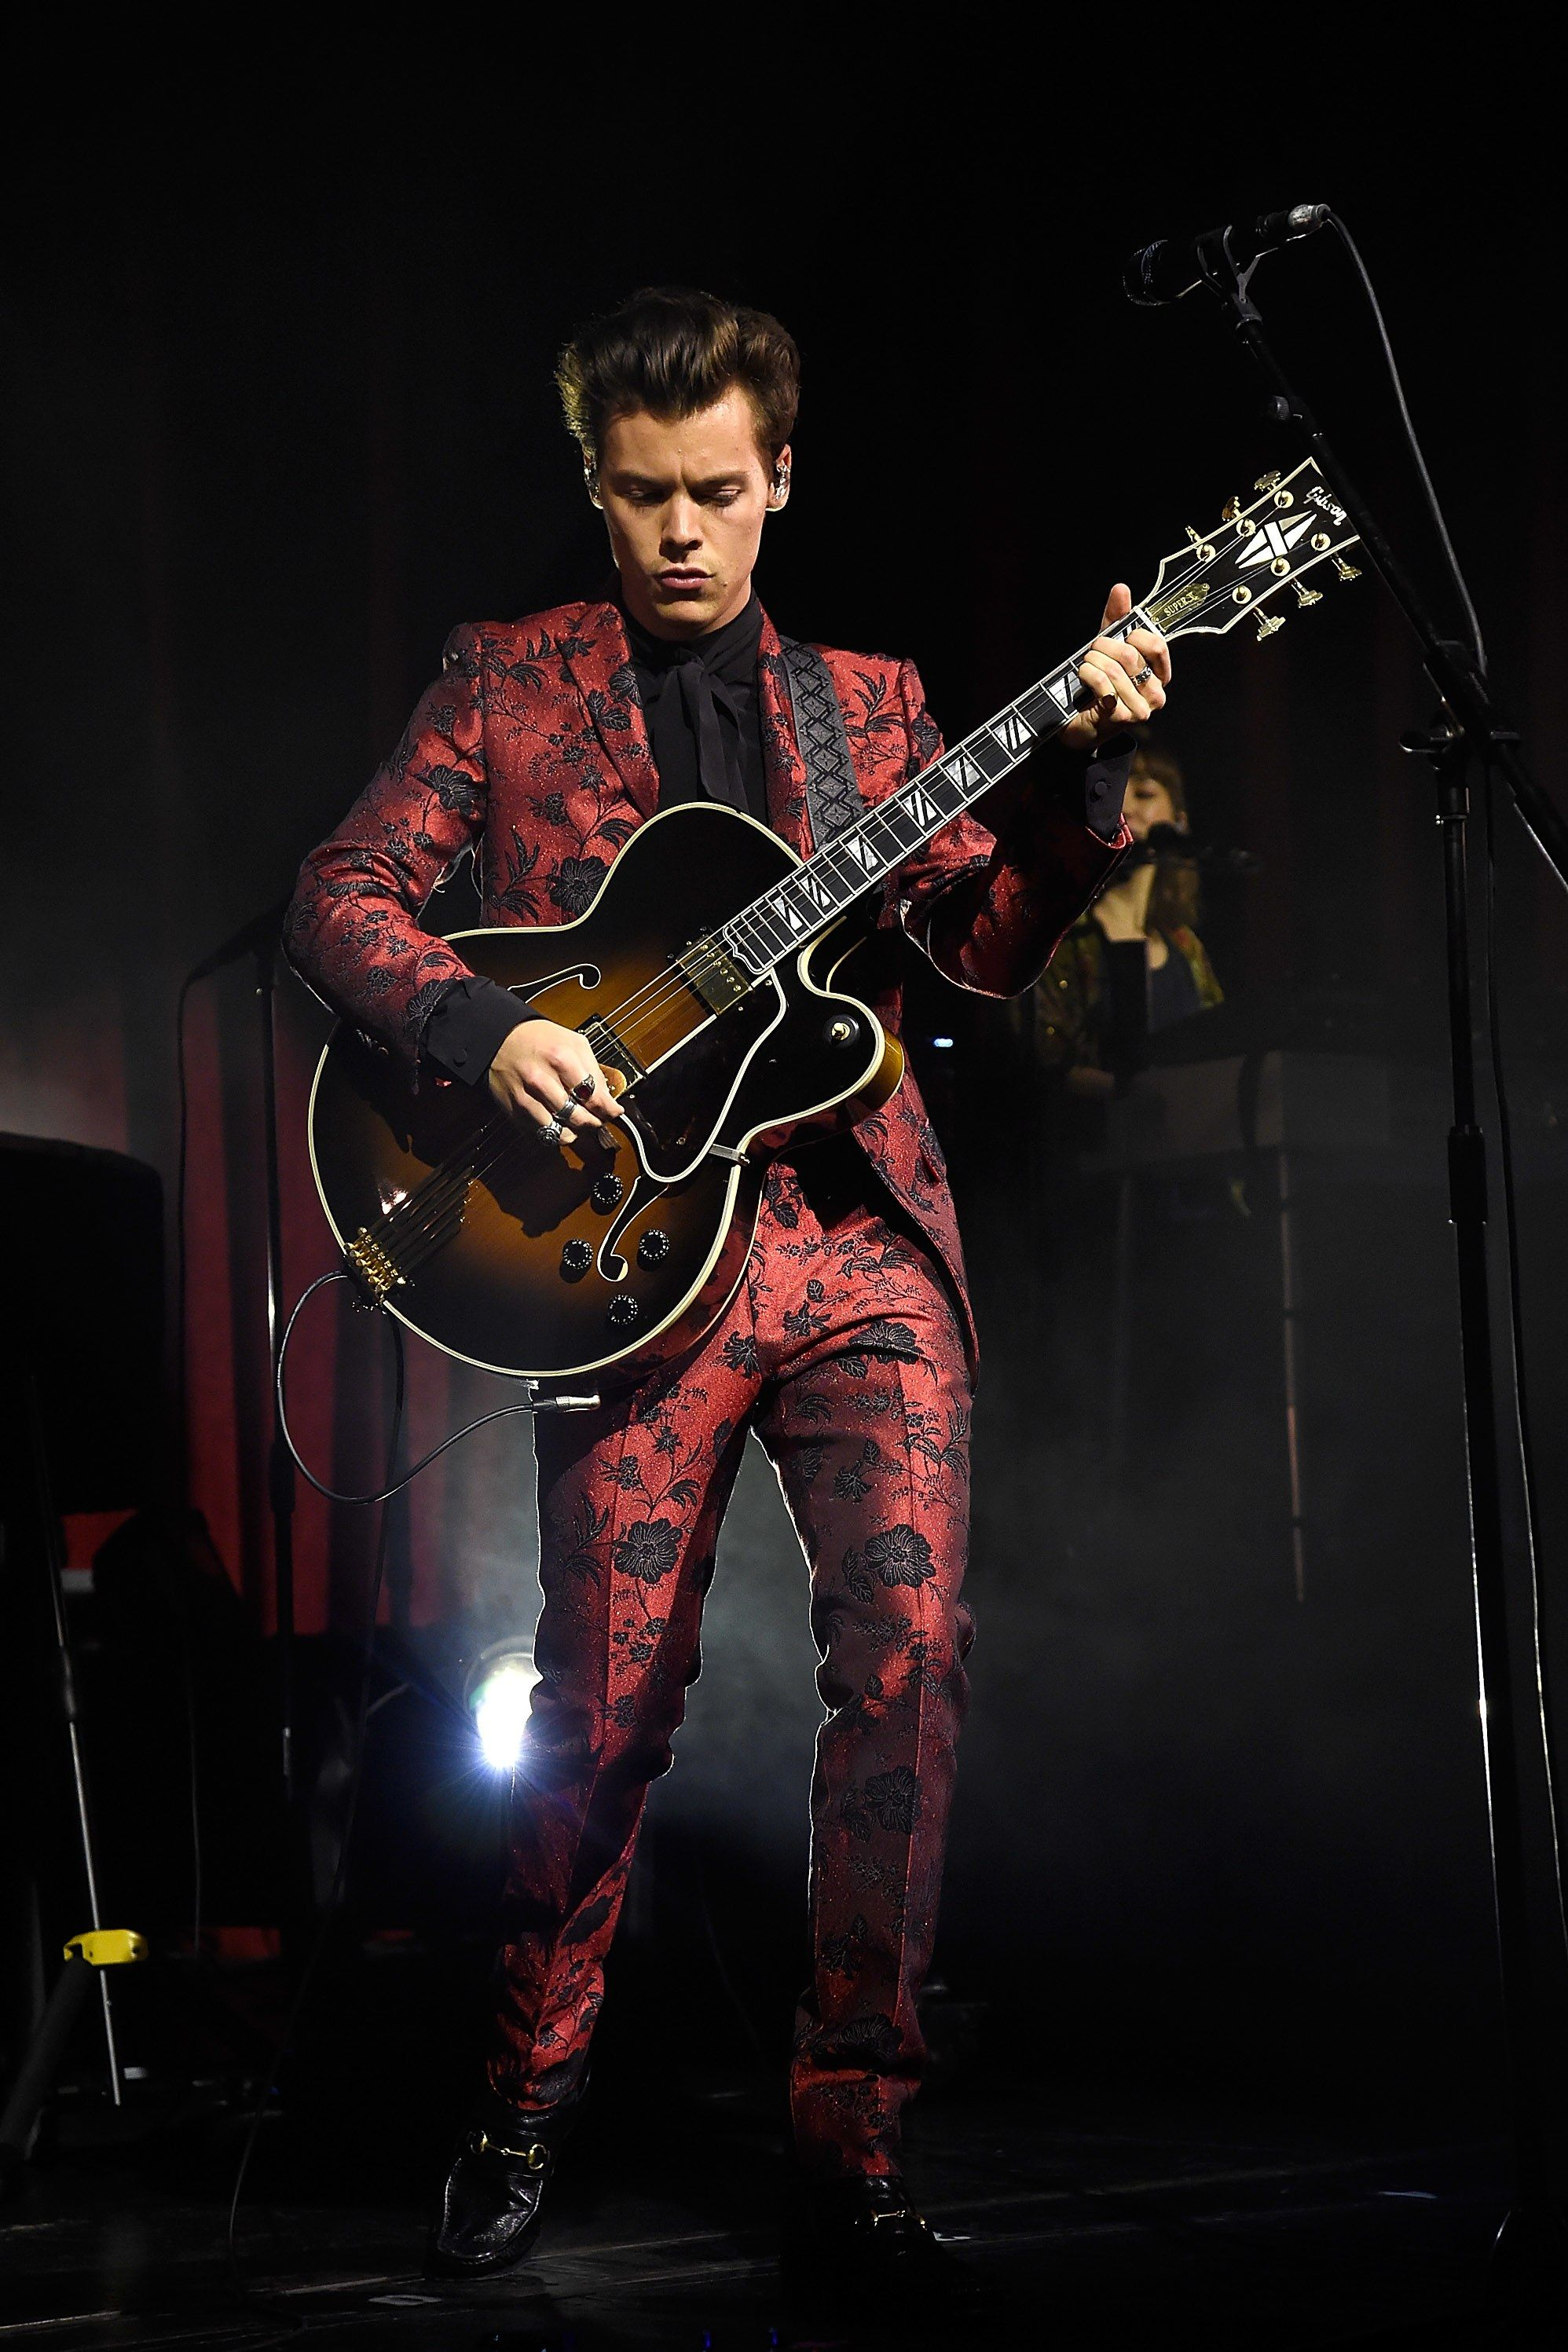 b5b91f5eee 15 Amazing Suits That Harry Styles Wore on His World Tour in 2019 ...